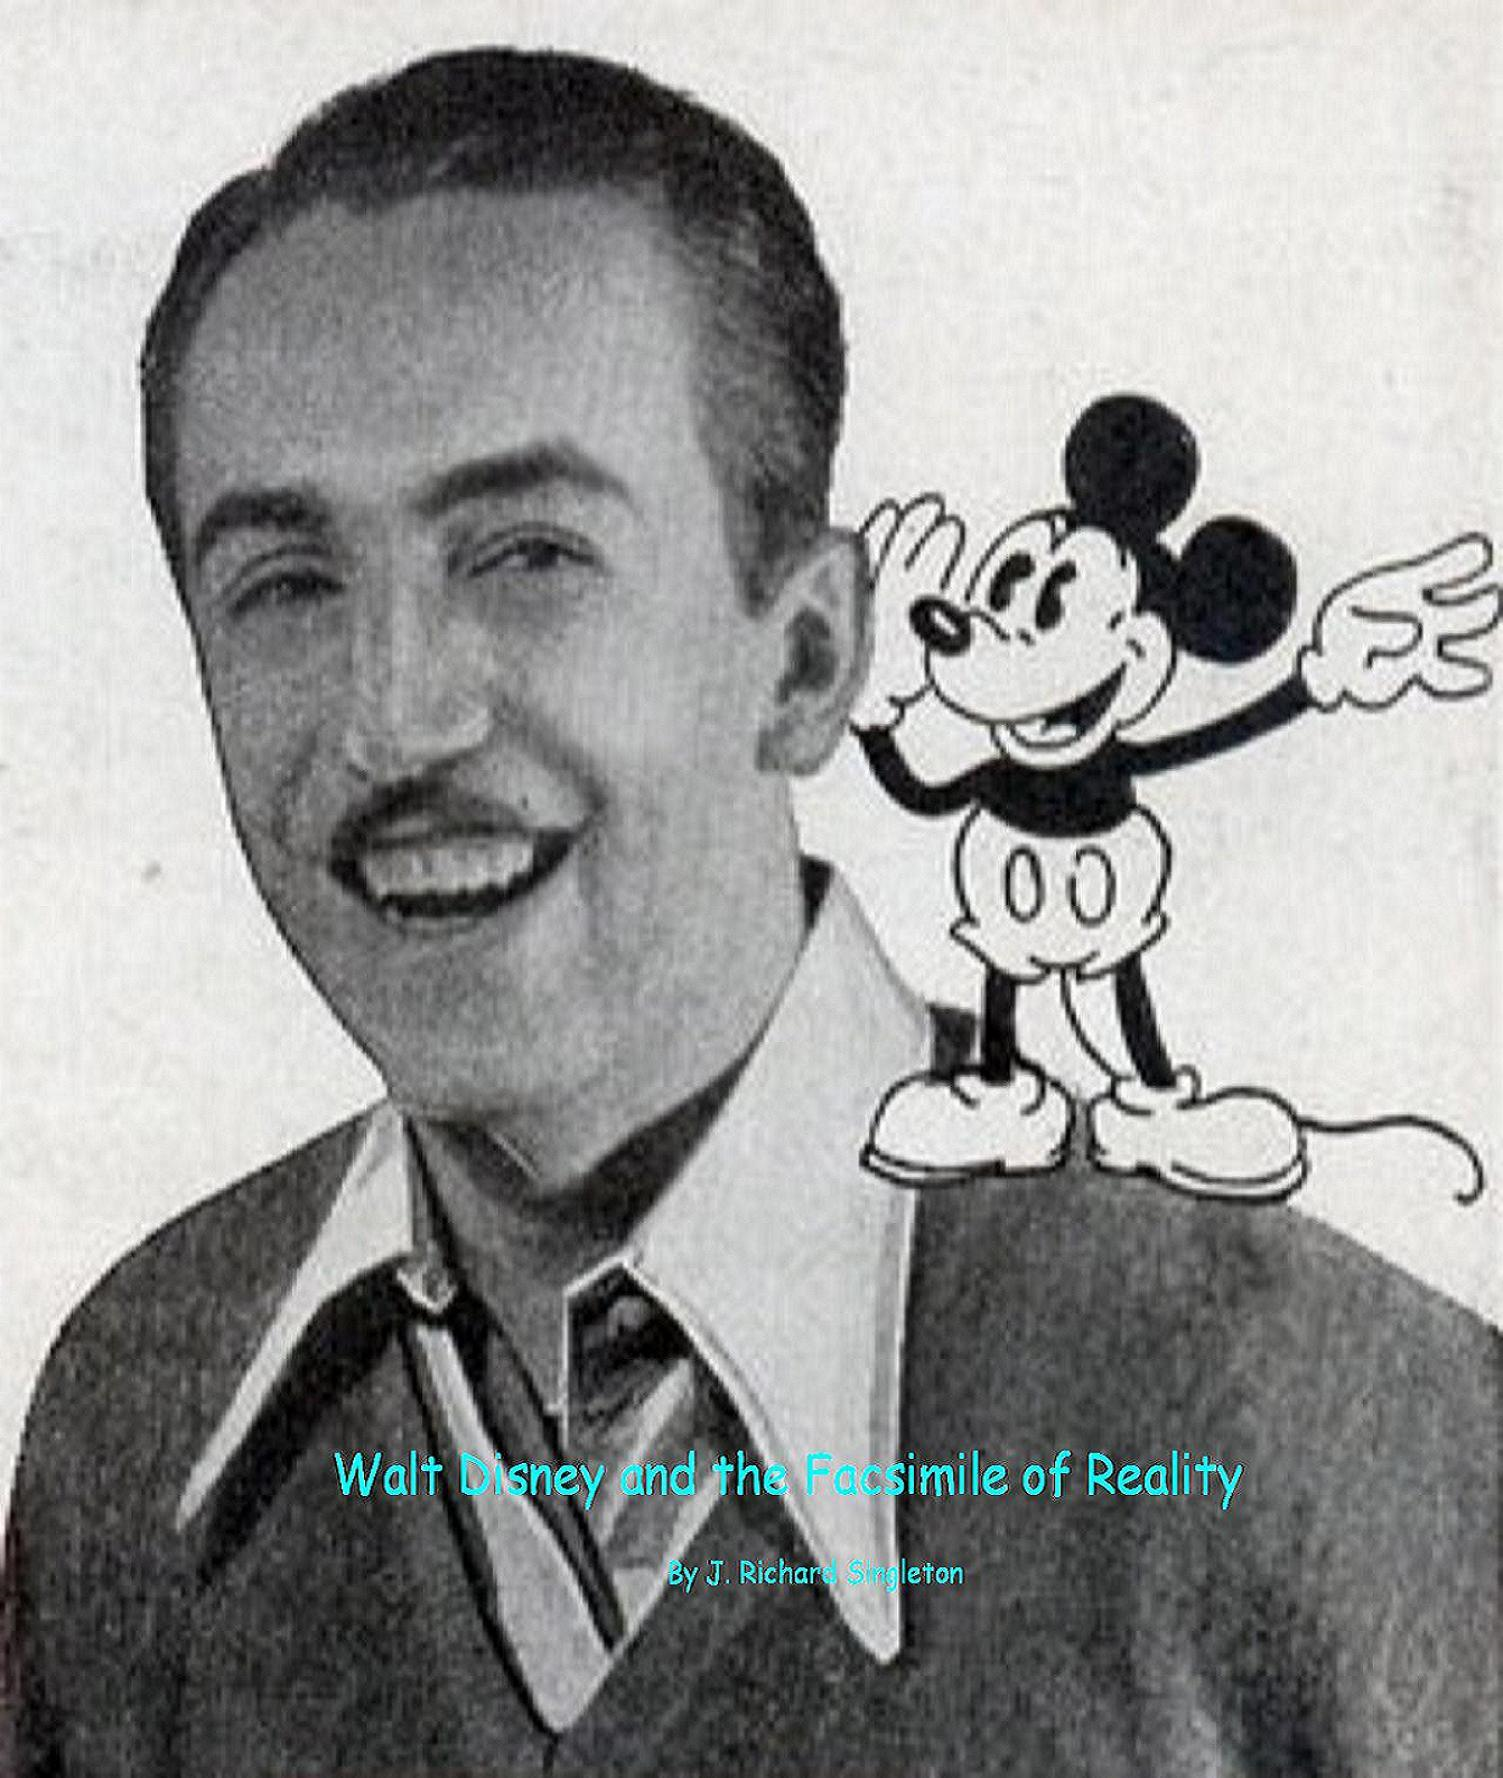 Walt Disney and the Facsimile of Reality